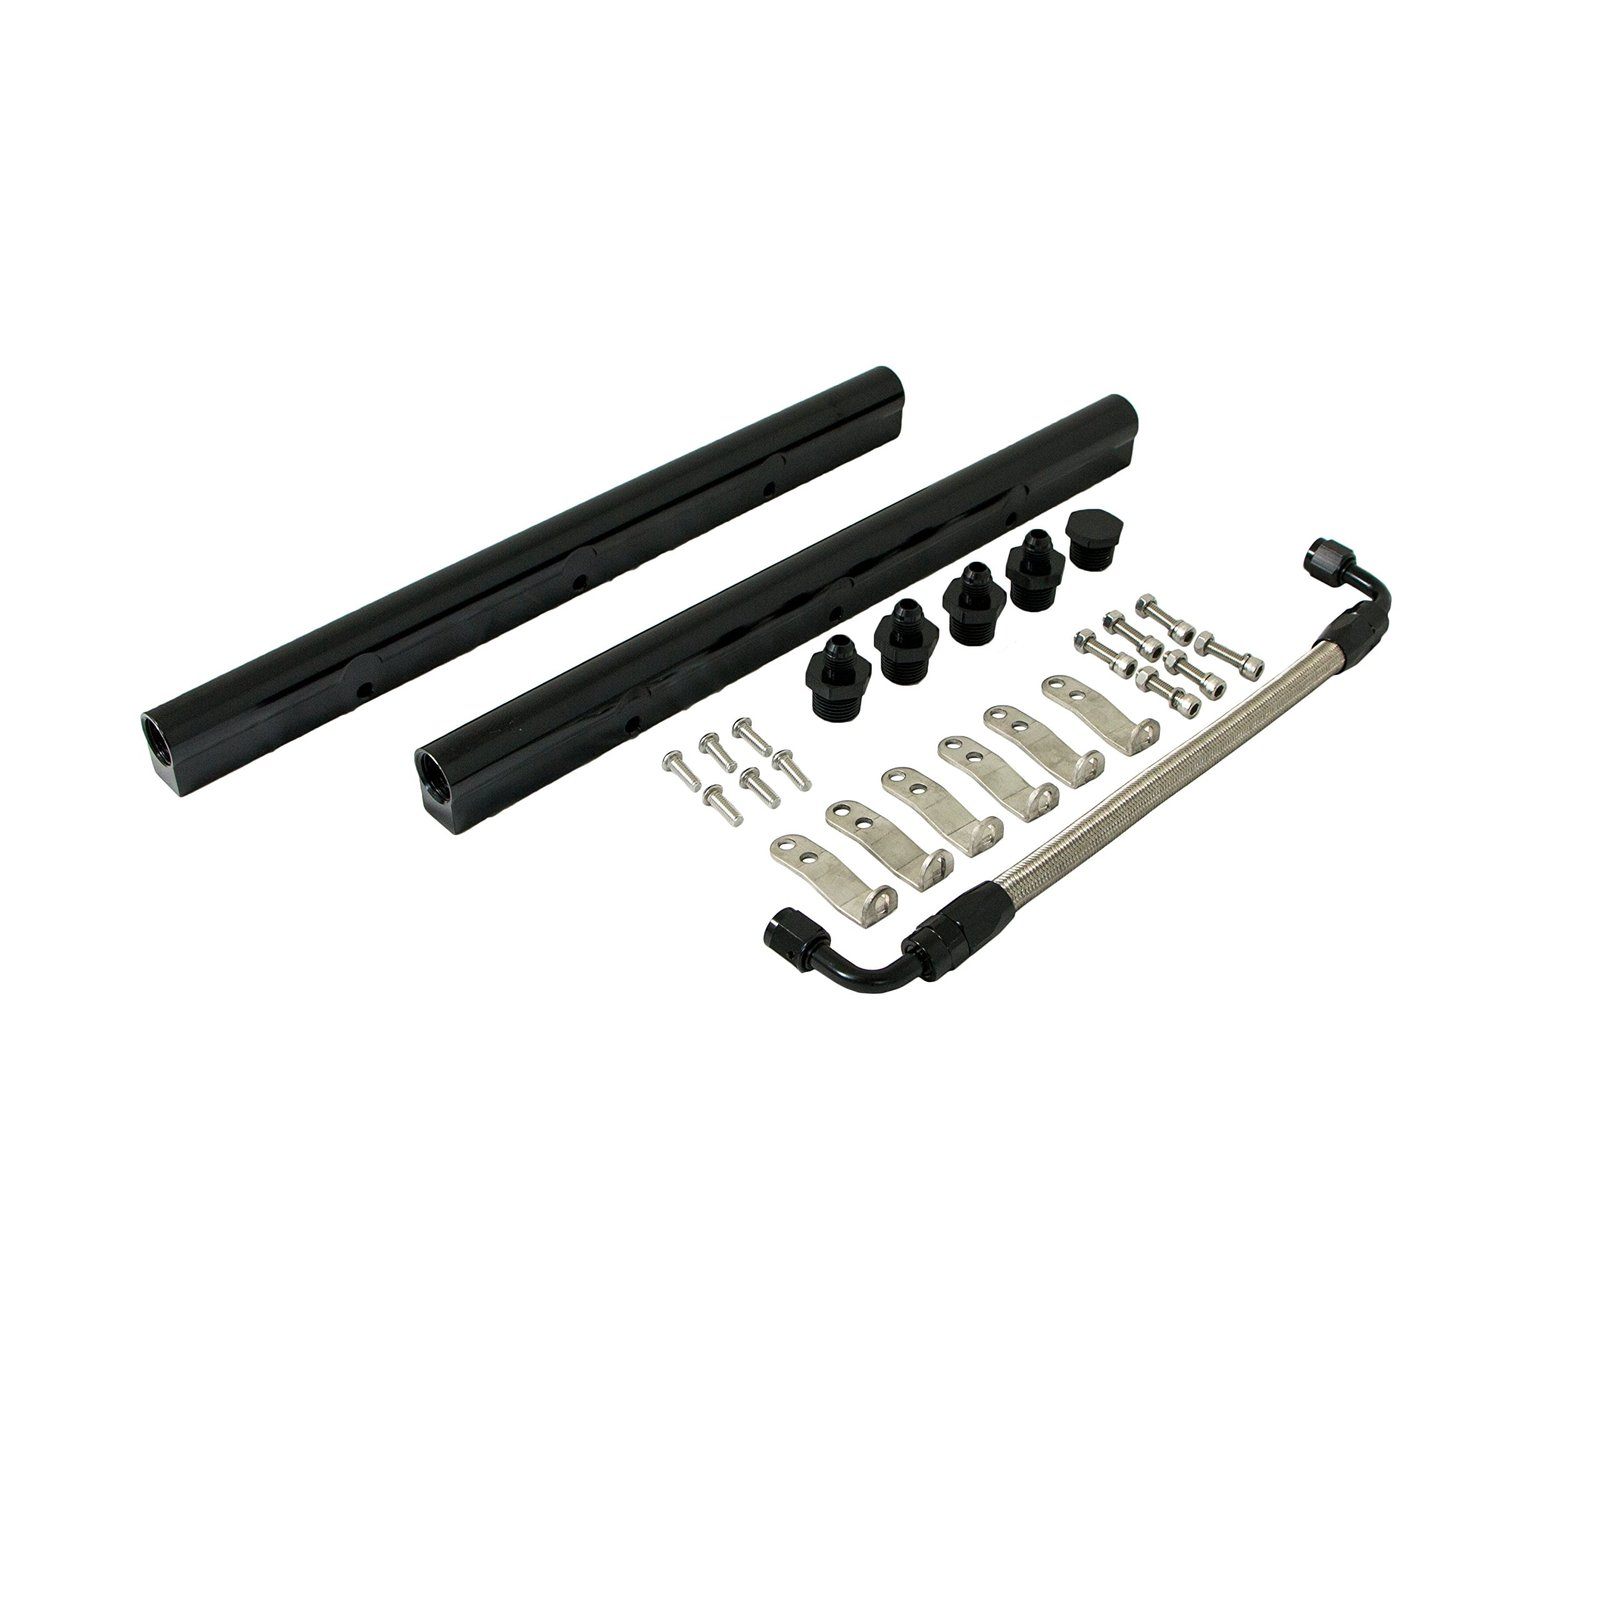 Top Street Performance 81008BK Black Fuel Rail with Middle Pipe